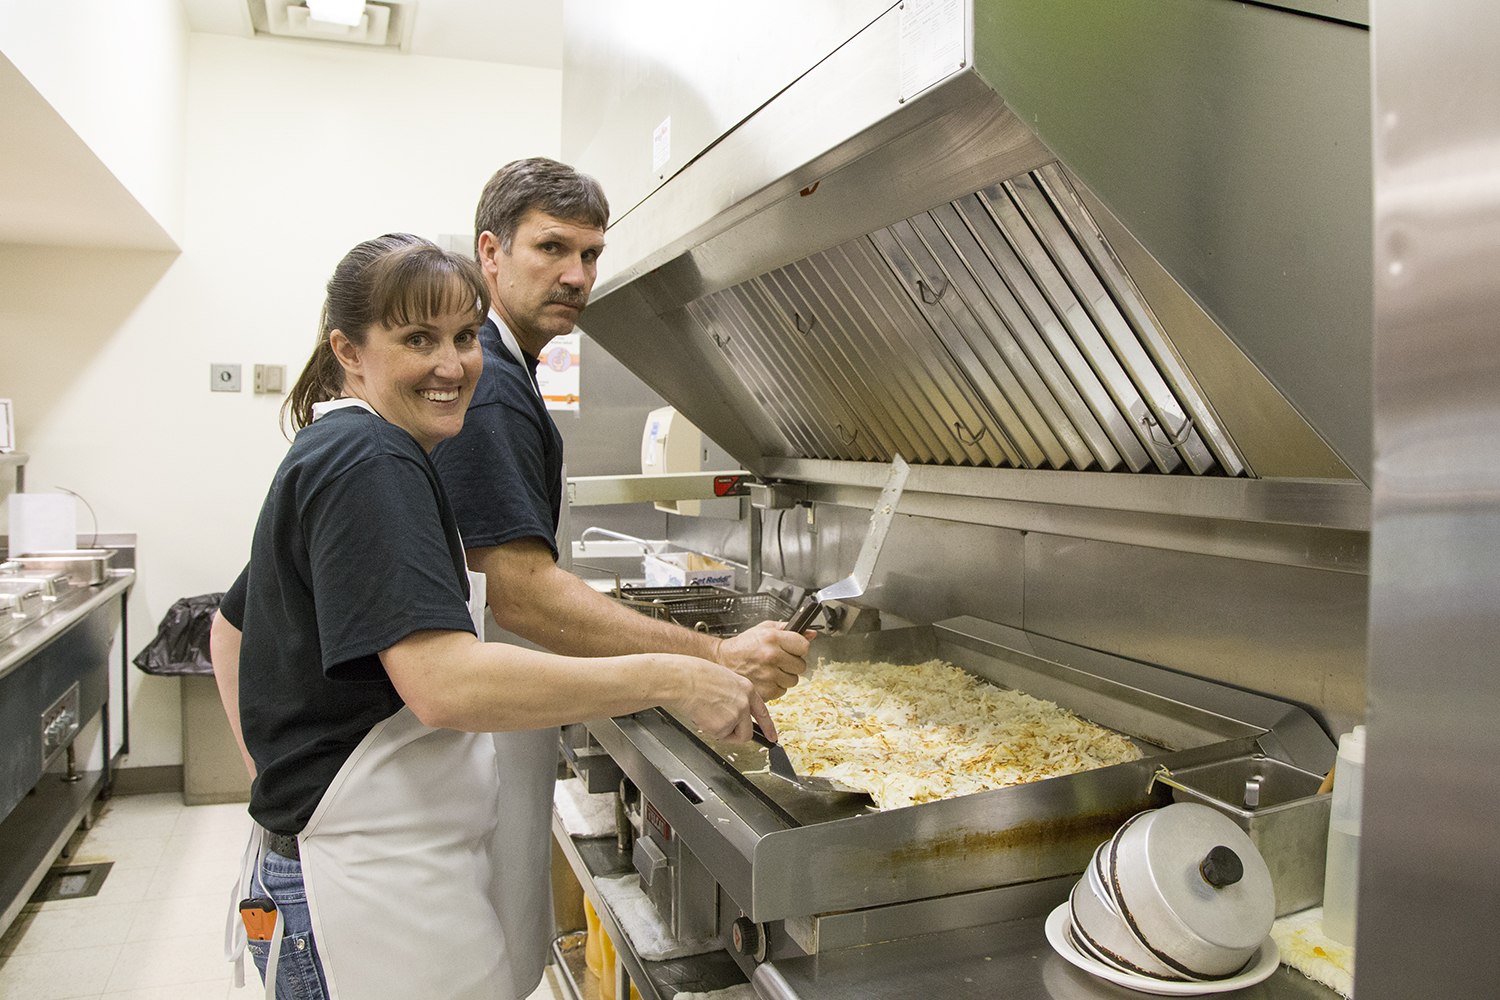 Jennifer Kellner and Steve Barlow cook up hashbrowns for the students.